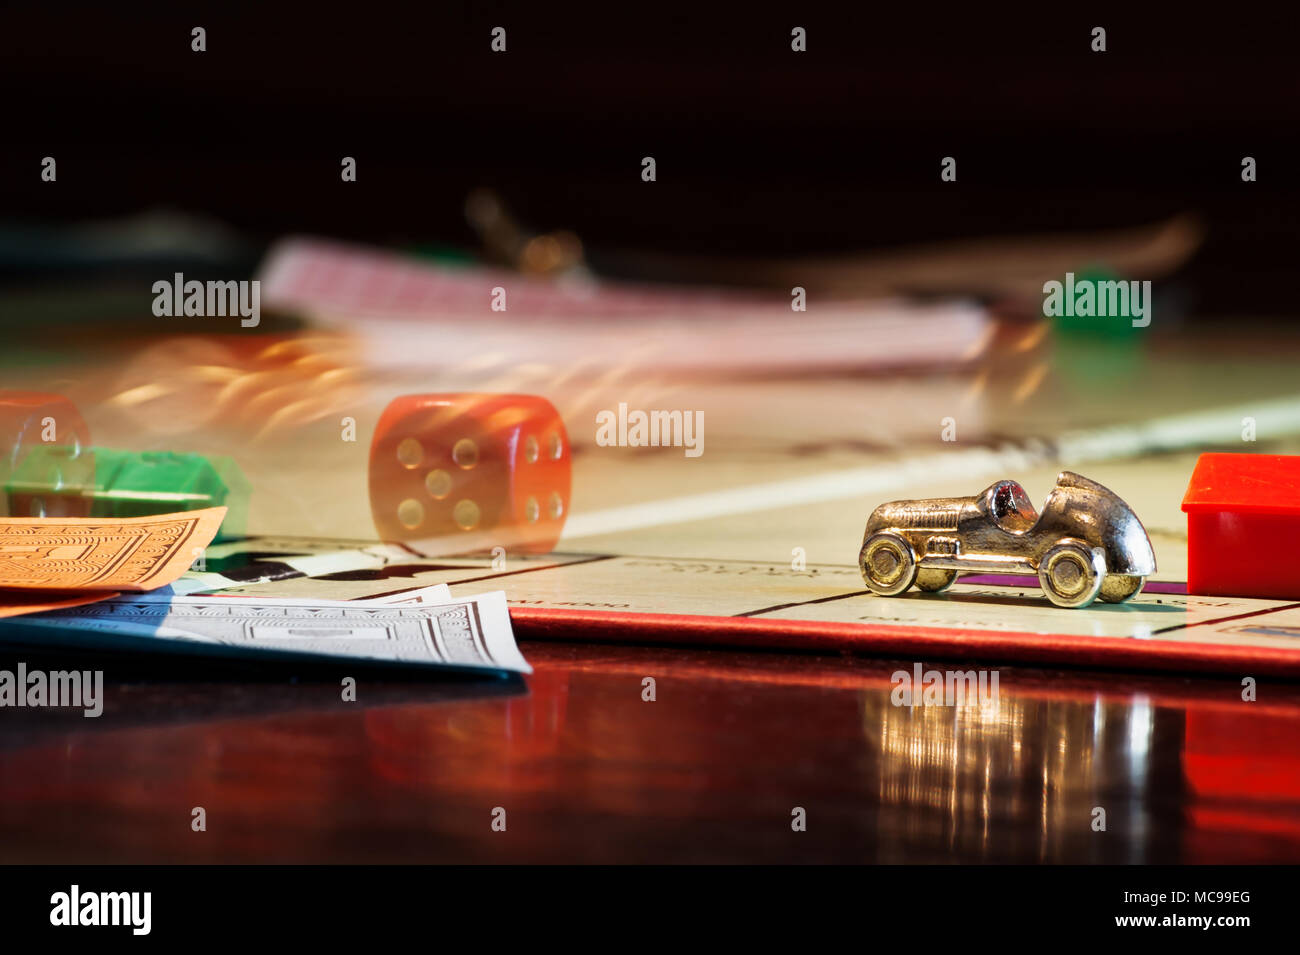 Salzburg, Austria - April 6 2010: Monopoly boardgame with rolling dice behind car - Stock Image